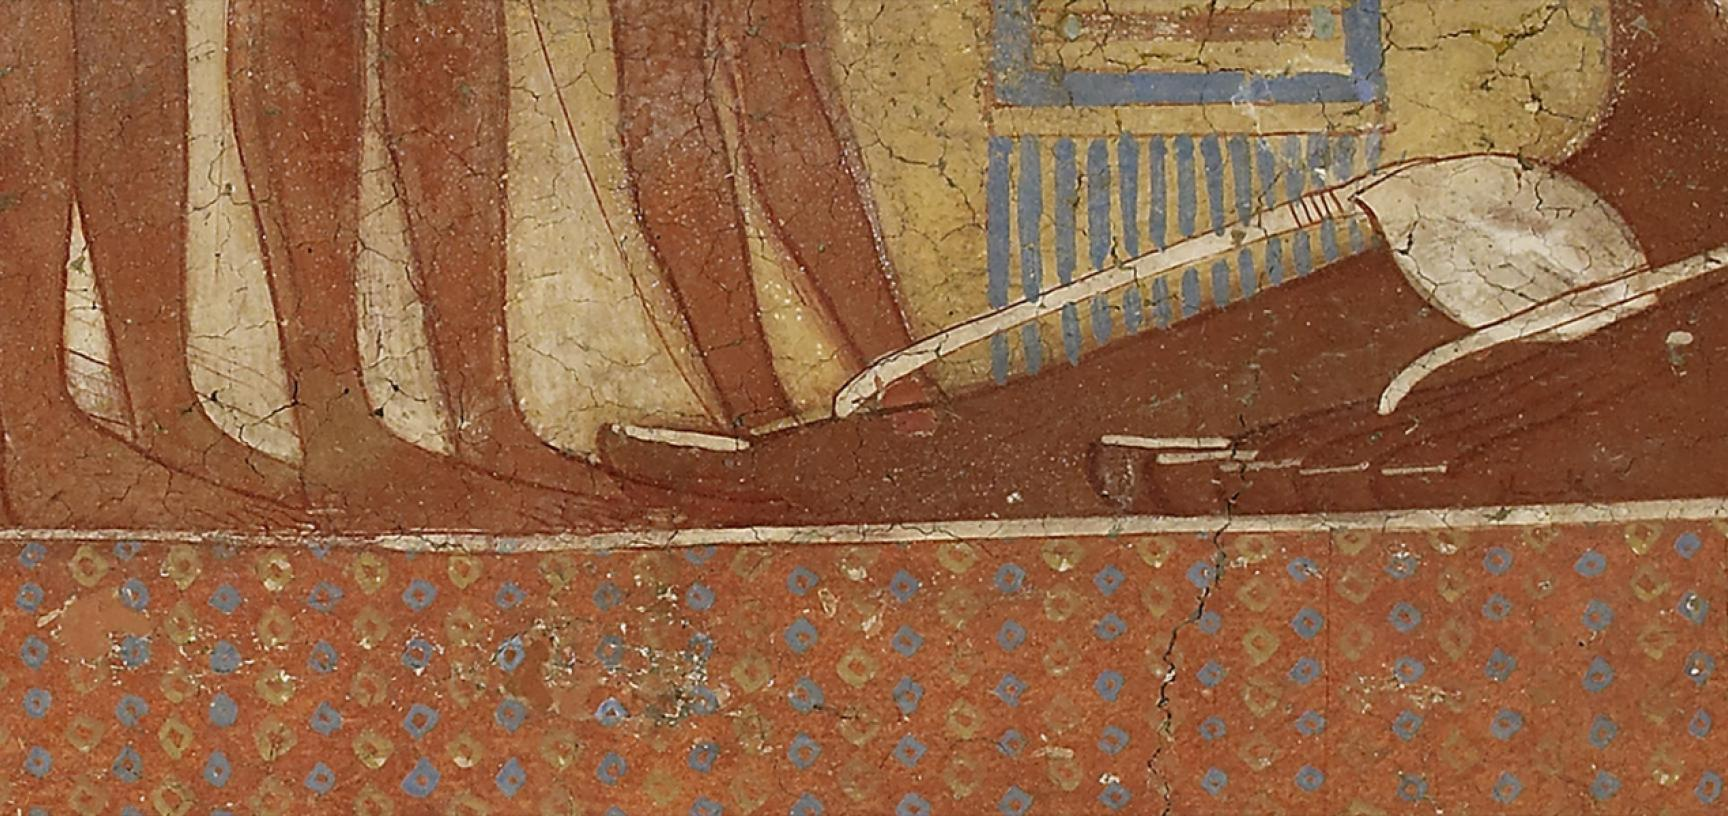 PRINCESS FRESCO (detail) from the Ashmolean collections